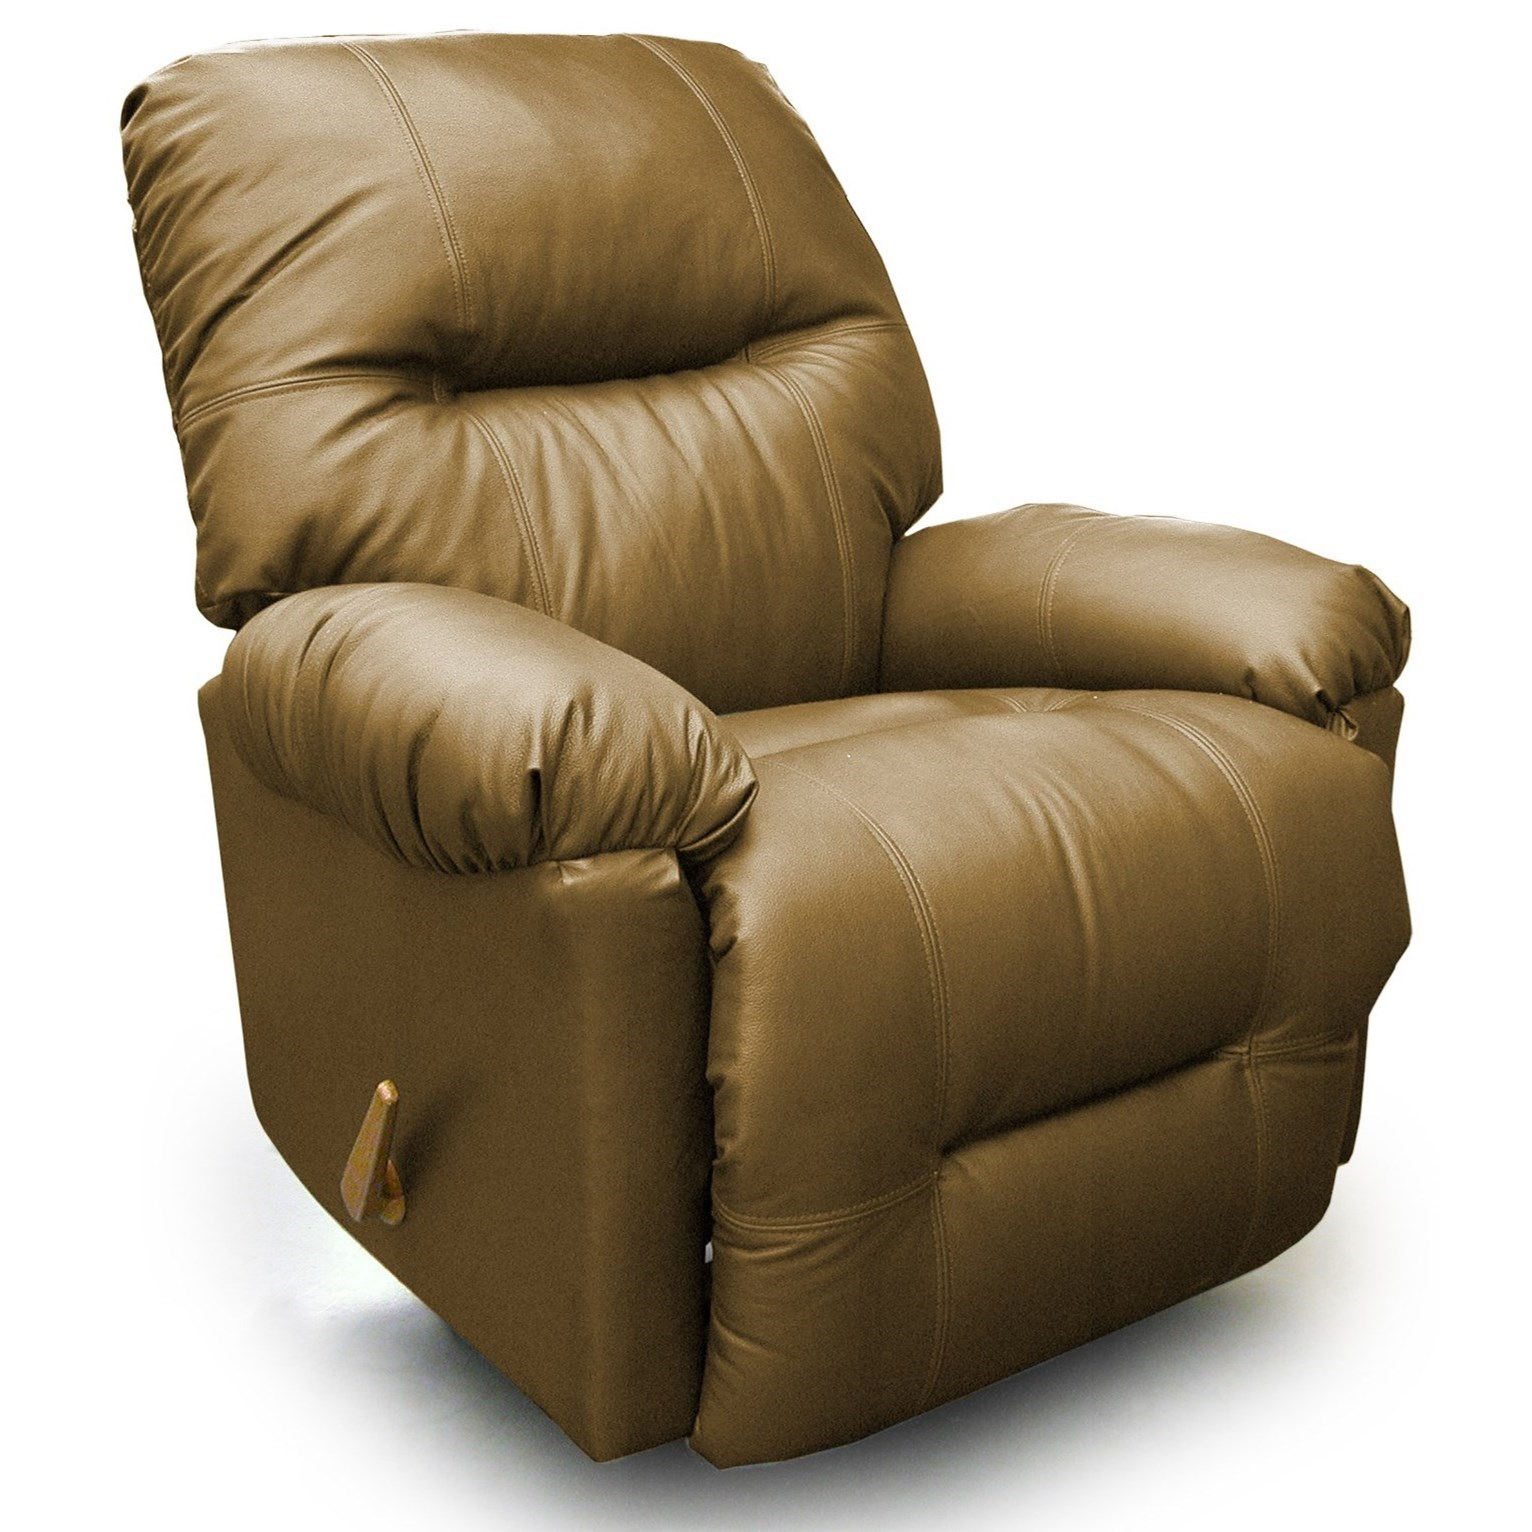 Petite Recliners Wynette Rocker Recliner by Best Home Furnishings at Baer's Furniture